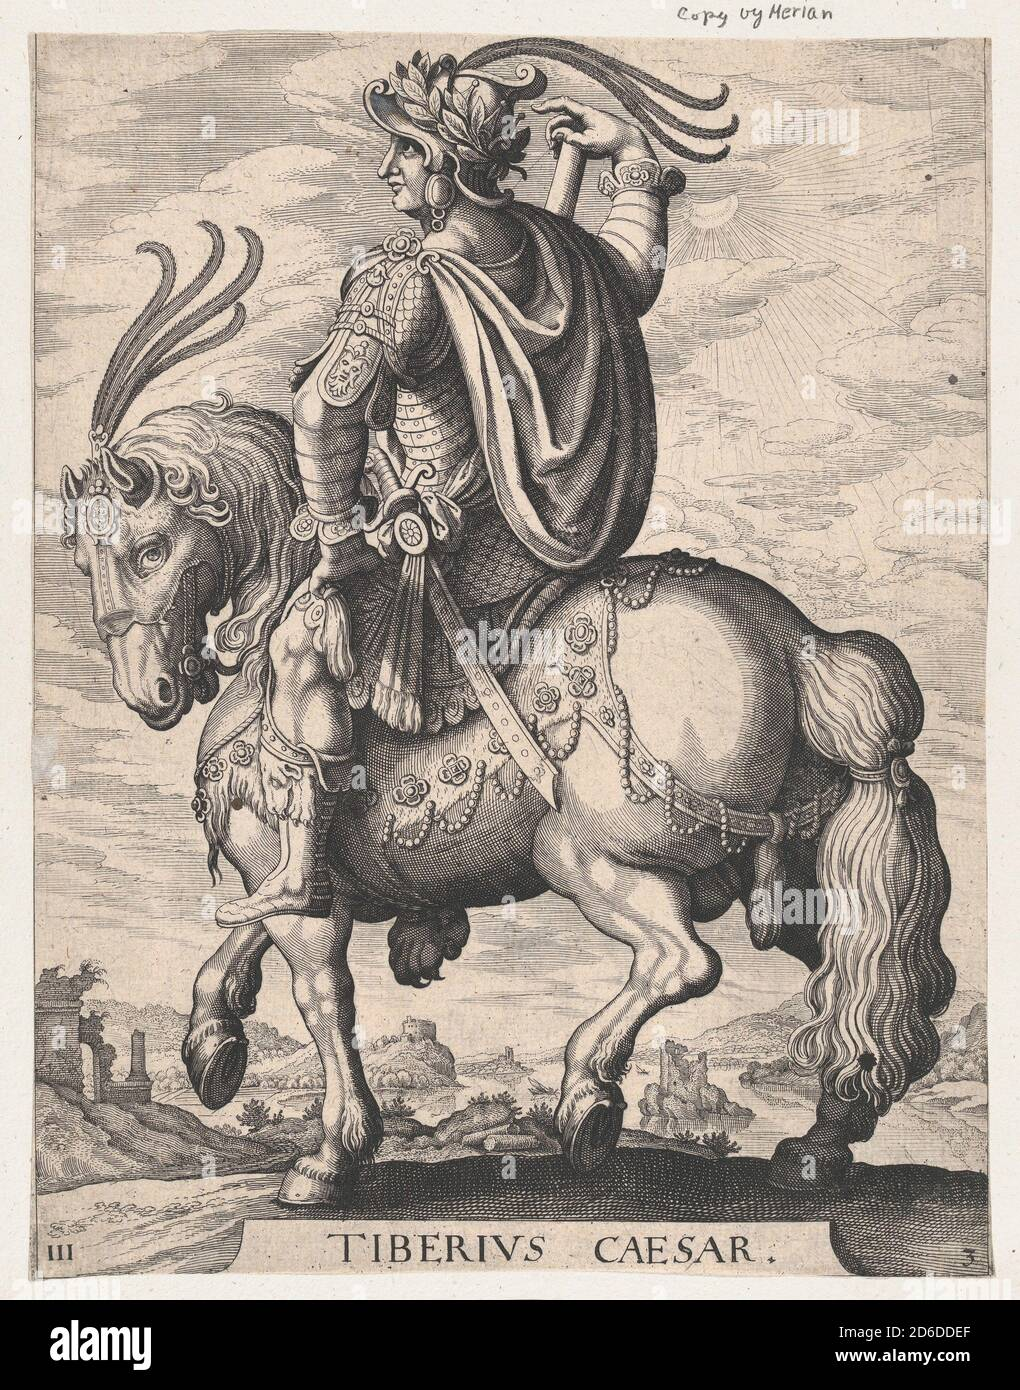 Plate 3: Emperor Tiberius on Horseback, from 'The First Twelve Roman Caesars', after Tempesta, 1610-50. Stock Photo